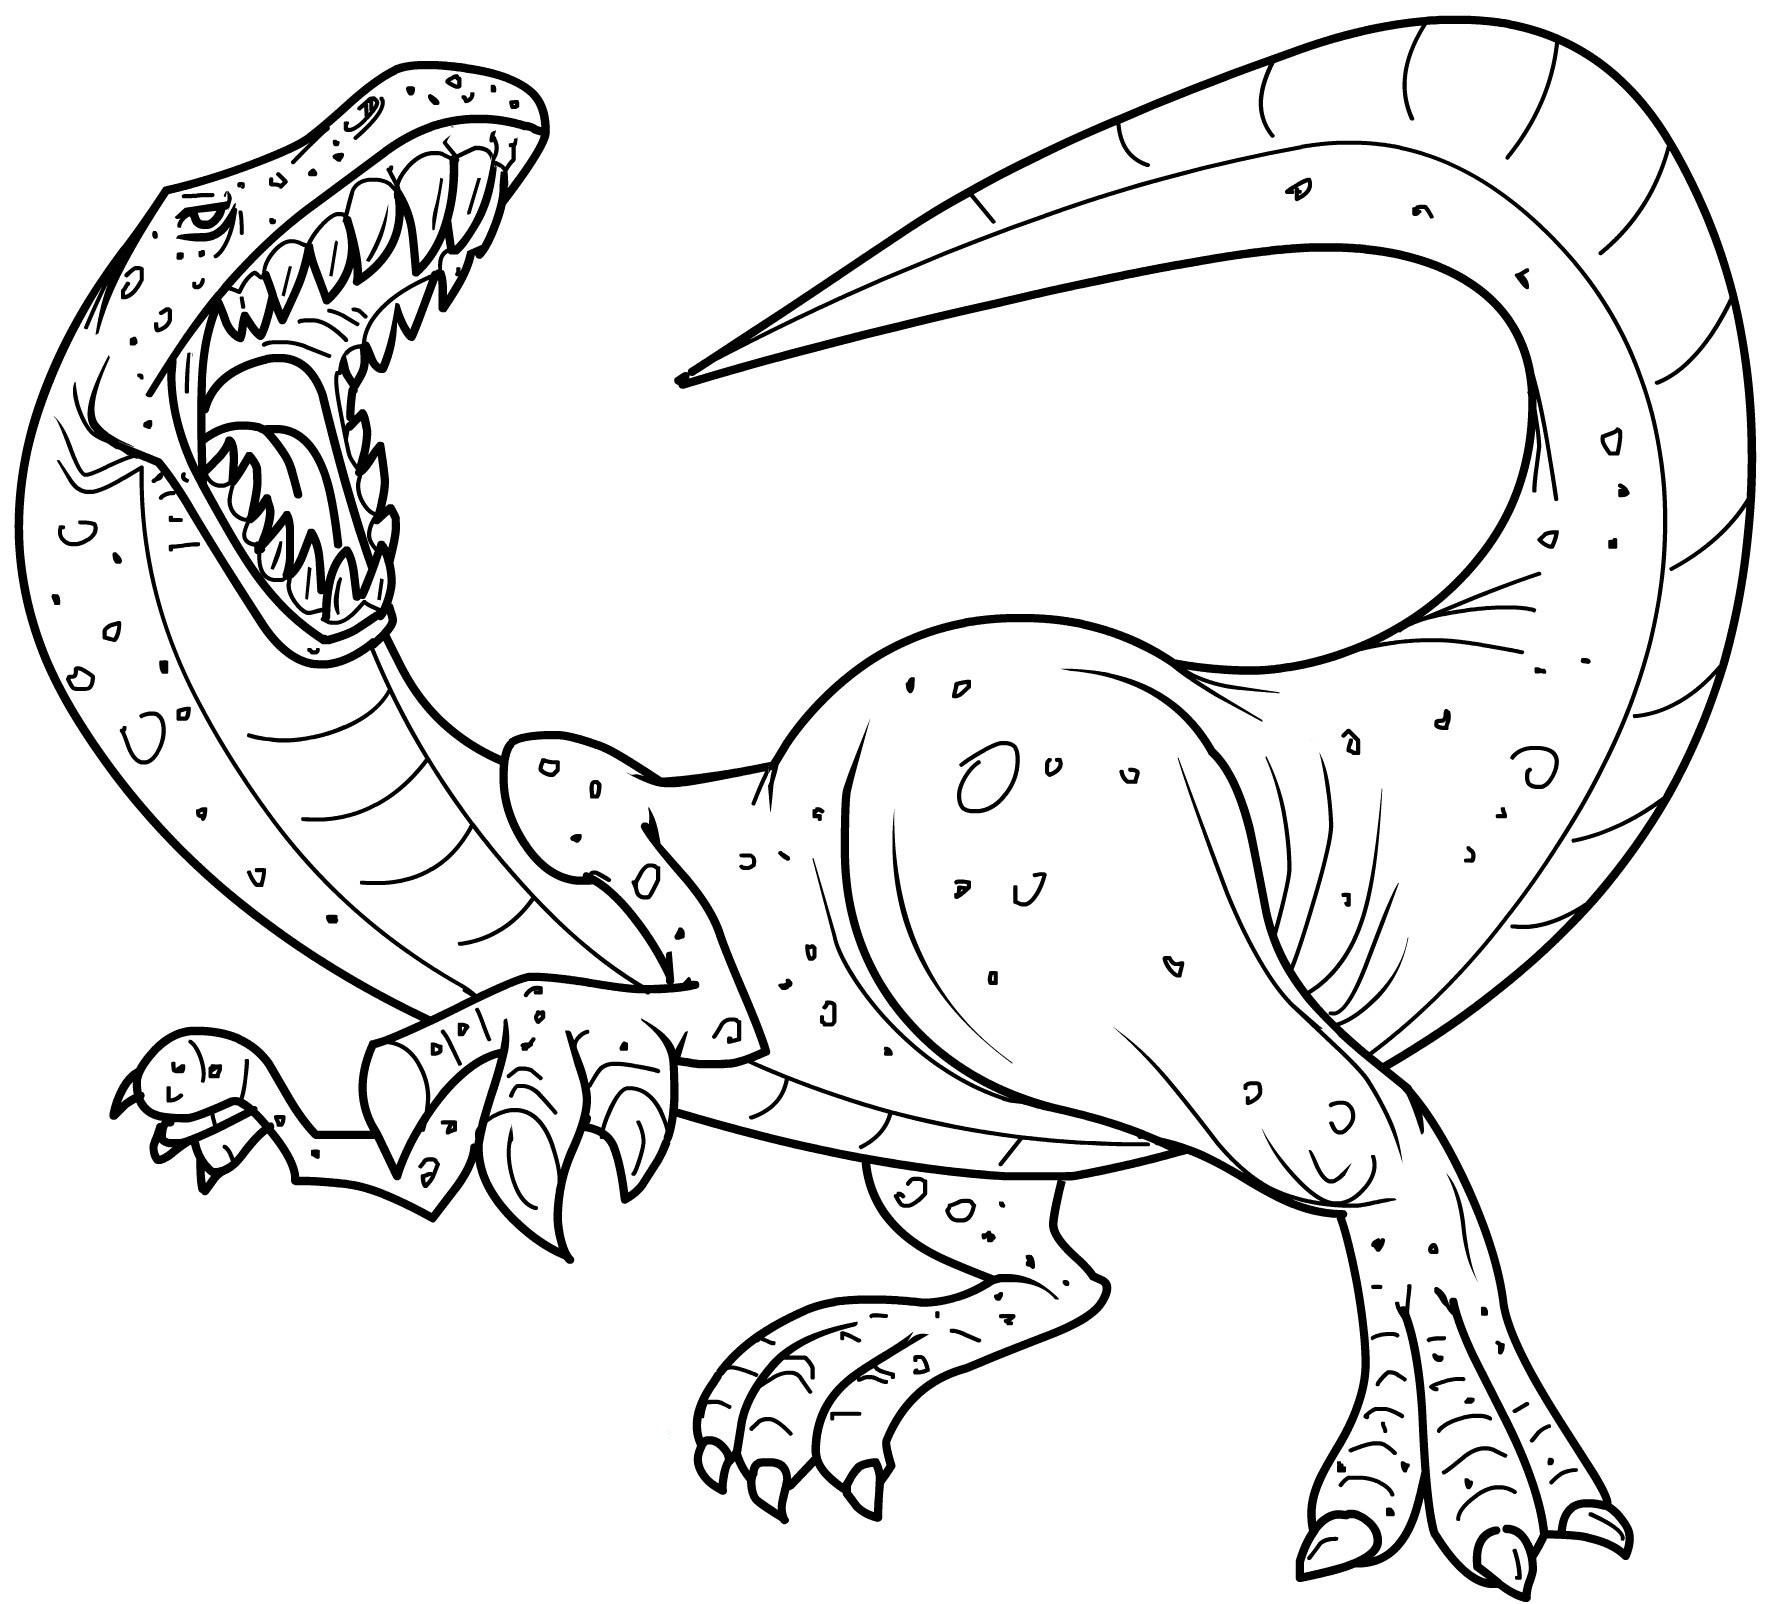 printable pictures of dinosaurs coloring town dinosaurs printable pictures of